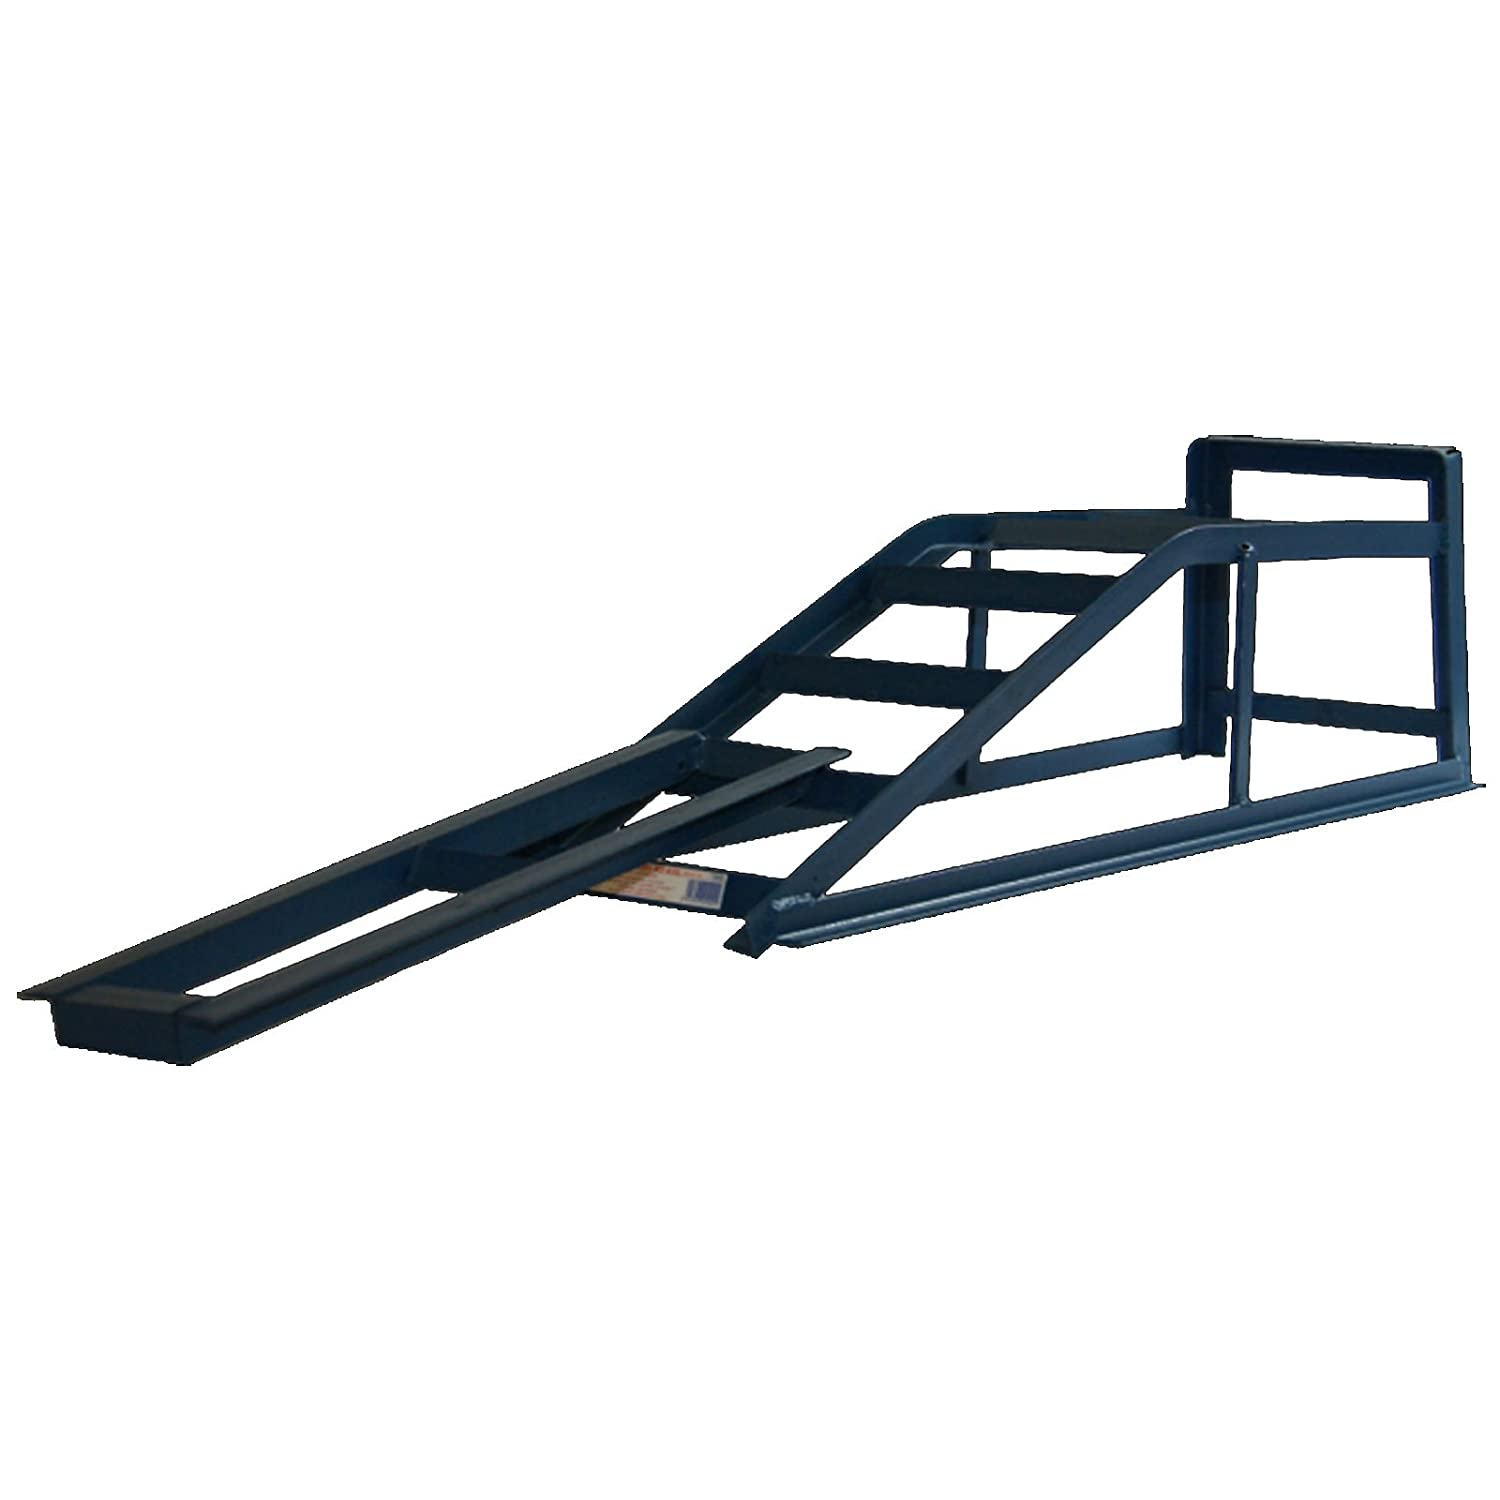 Sirius Car Ramp Pair Extension for Low Ground Clearance Cars